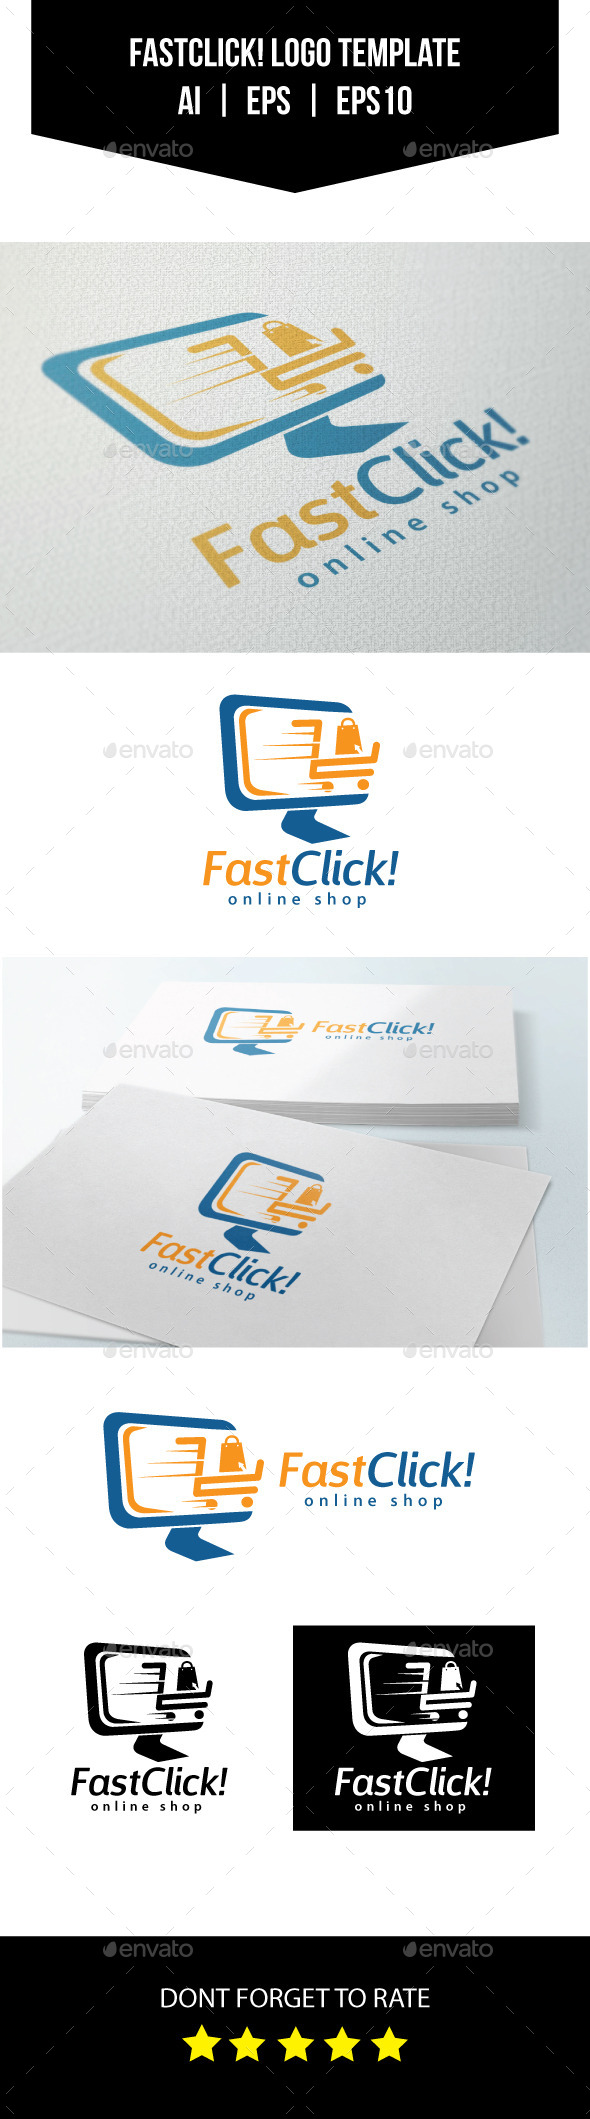 Online Shop Logo Template By Aninfloat Graphicriver